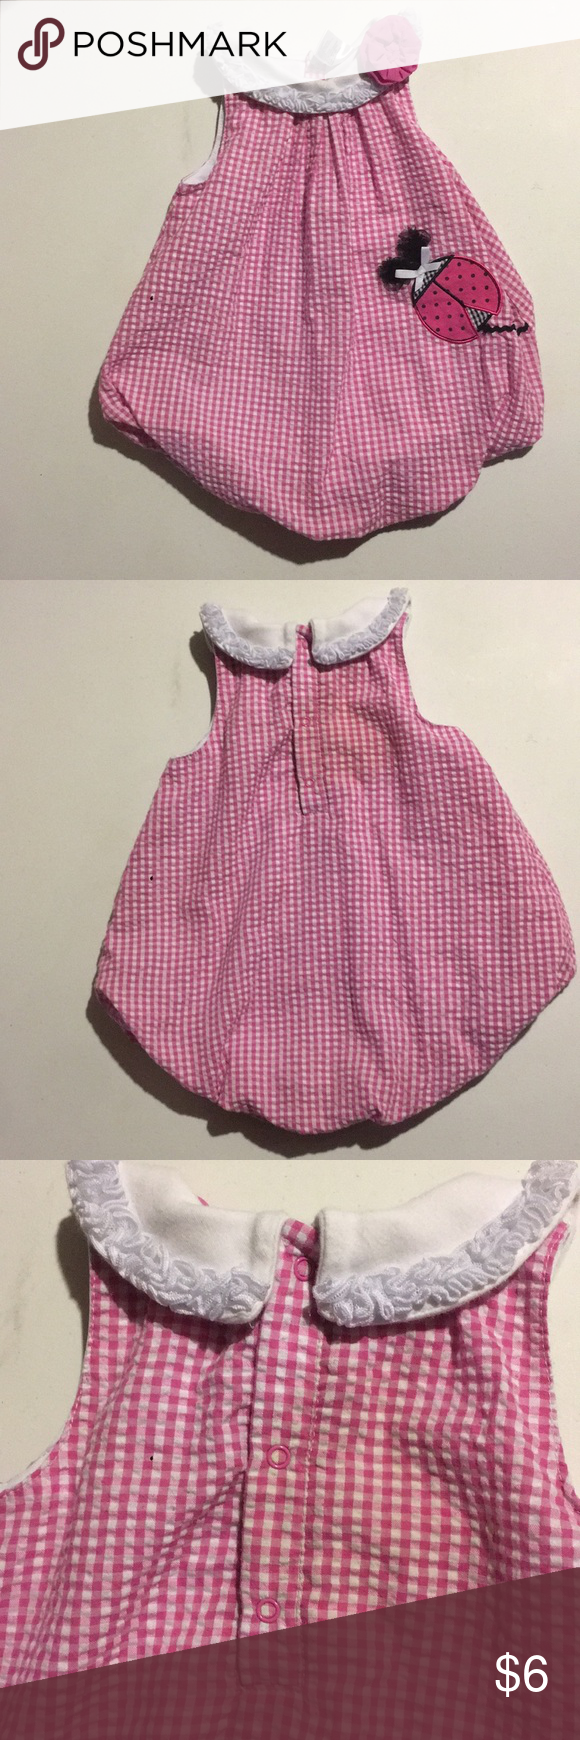 80feafb3f87d Adorable one piece outfit - 24 month old